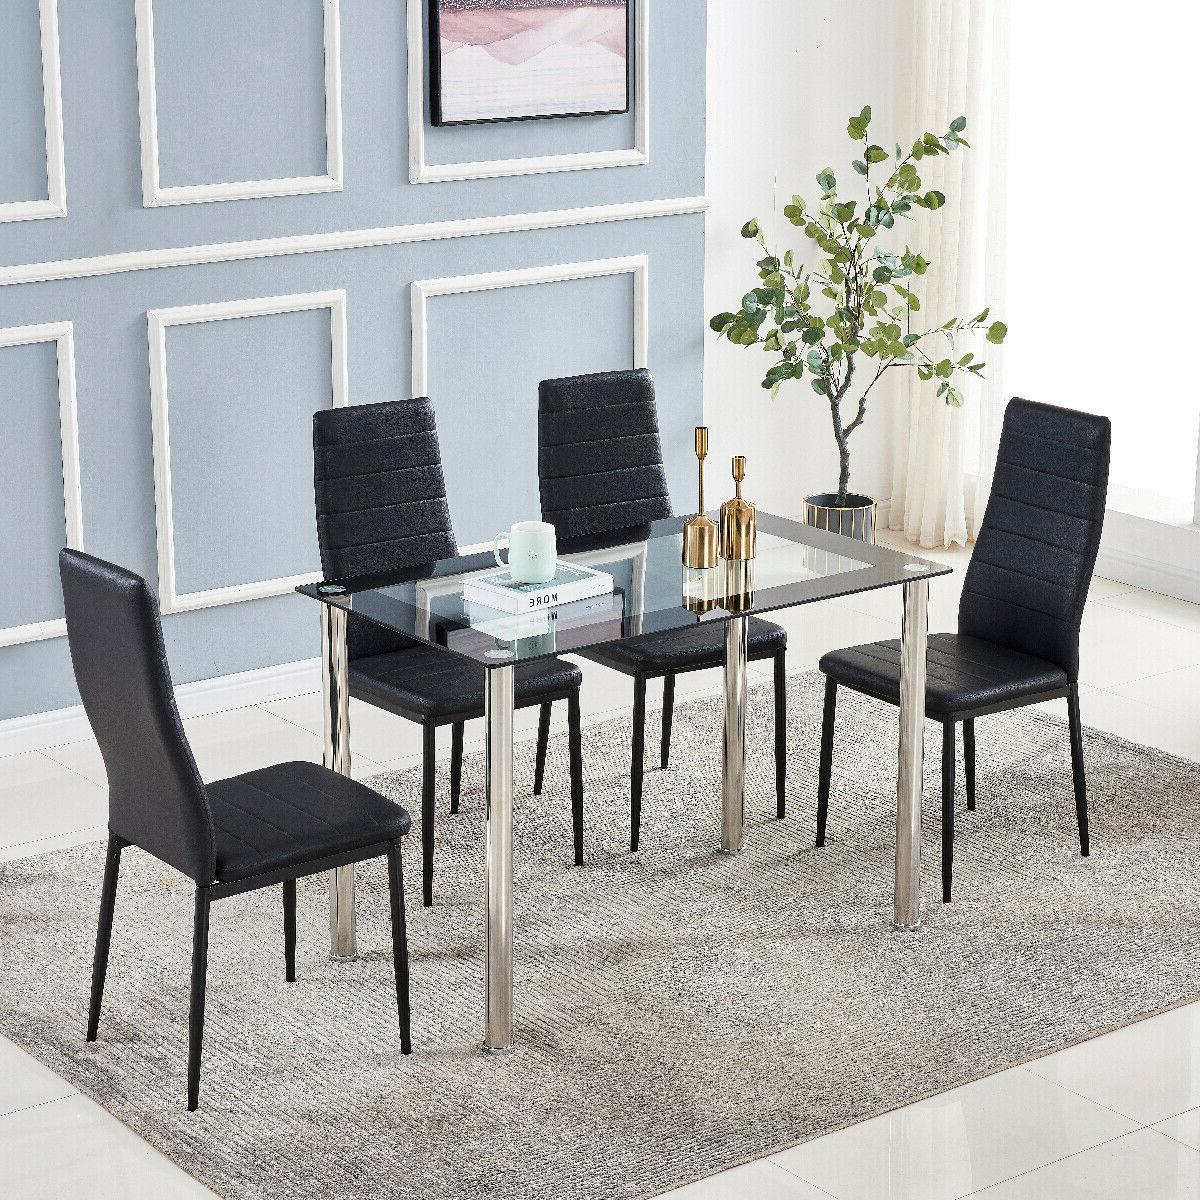 Set of Dining Room Set Metal Table 4 Chairs